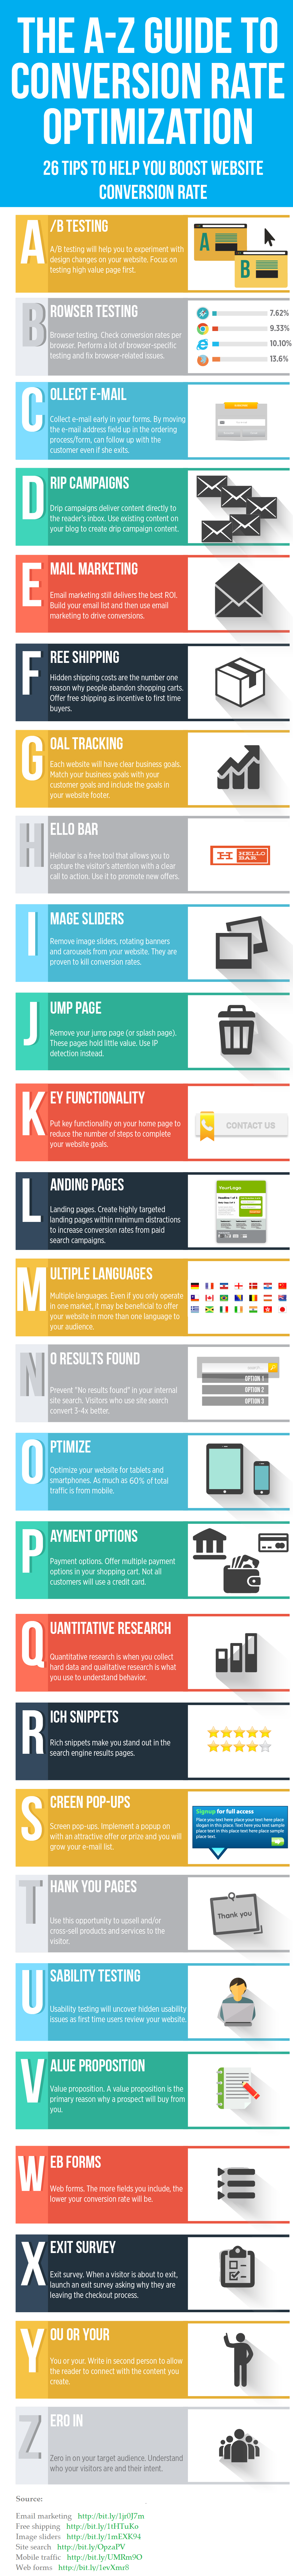 The A to Z Guide to Conversion Rate Optimization Infographic